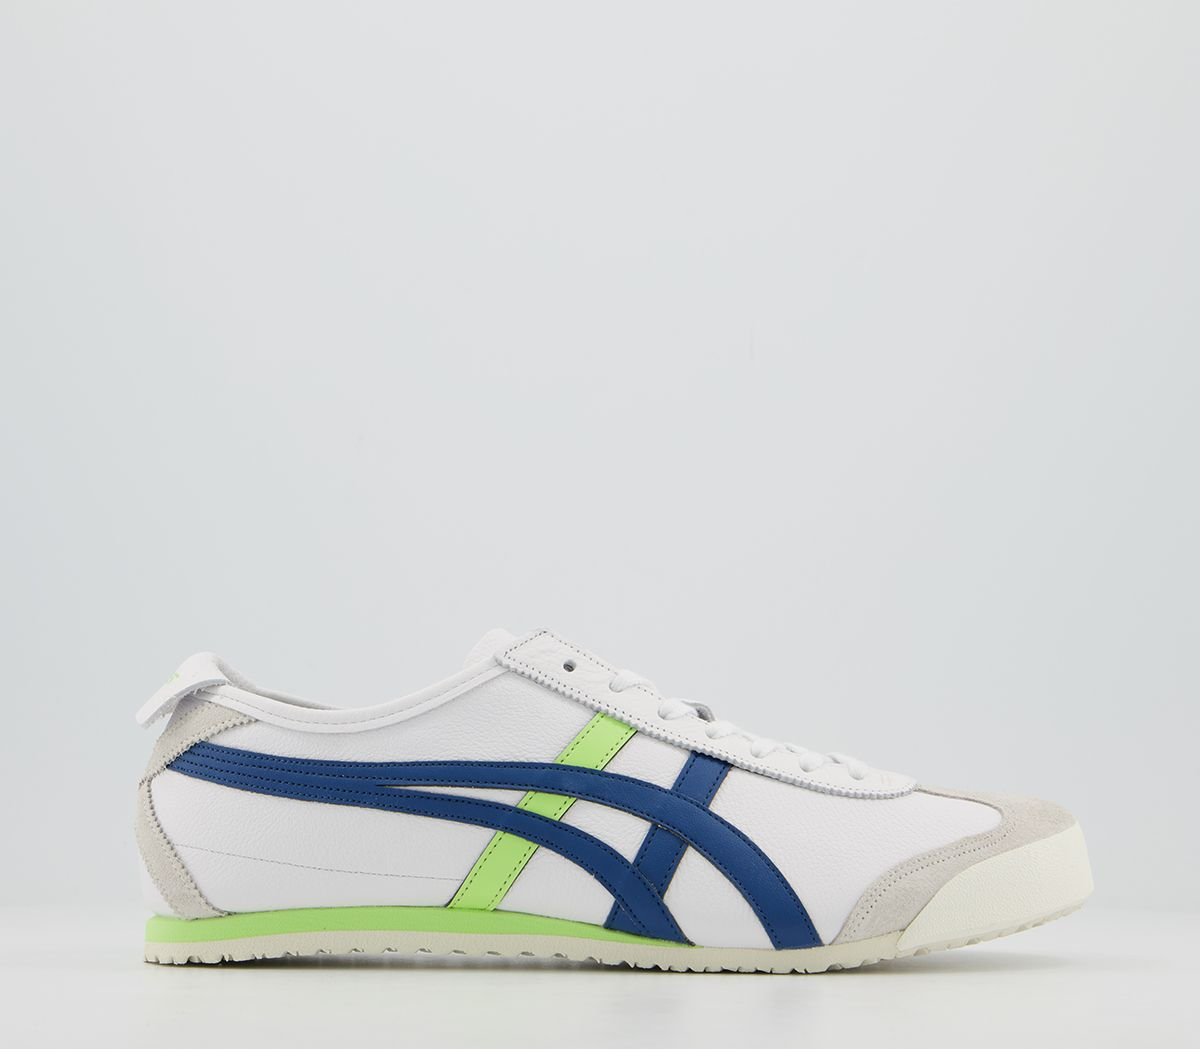 onitsuka tiger mexico 66 black blue uk email